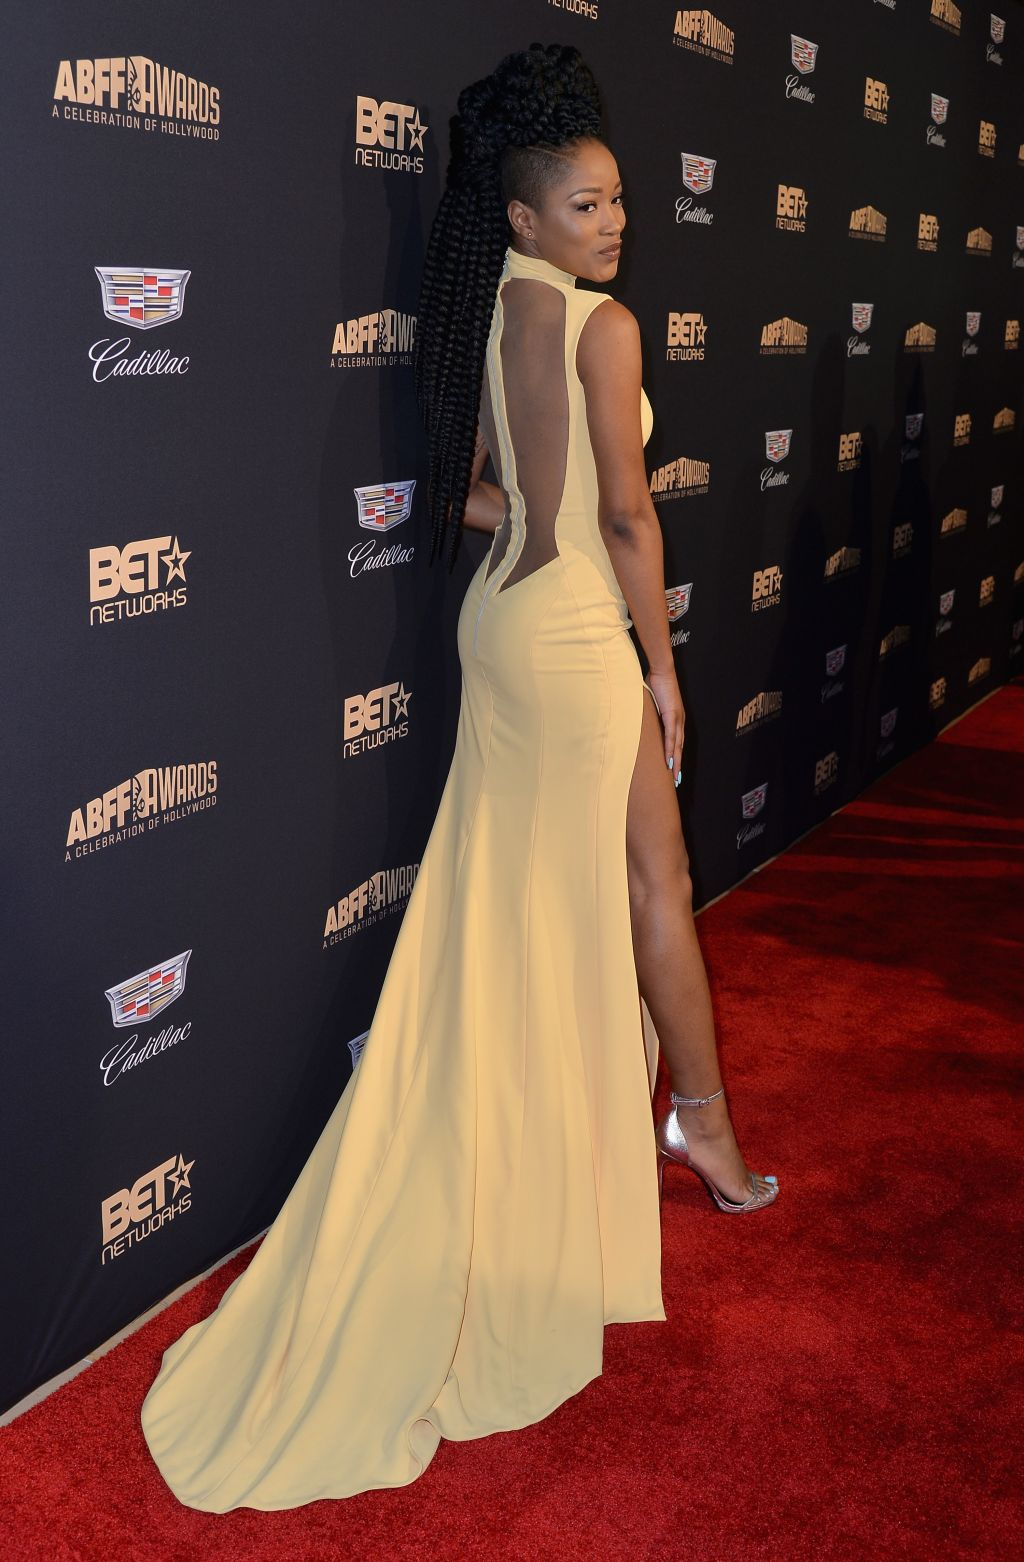 2016 ABFF Awards: A Celebration Of Hollywood - Red Carpet